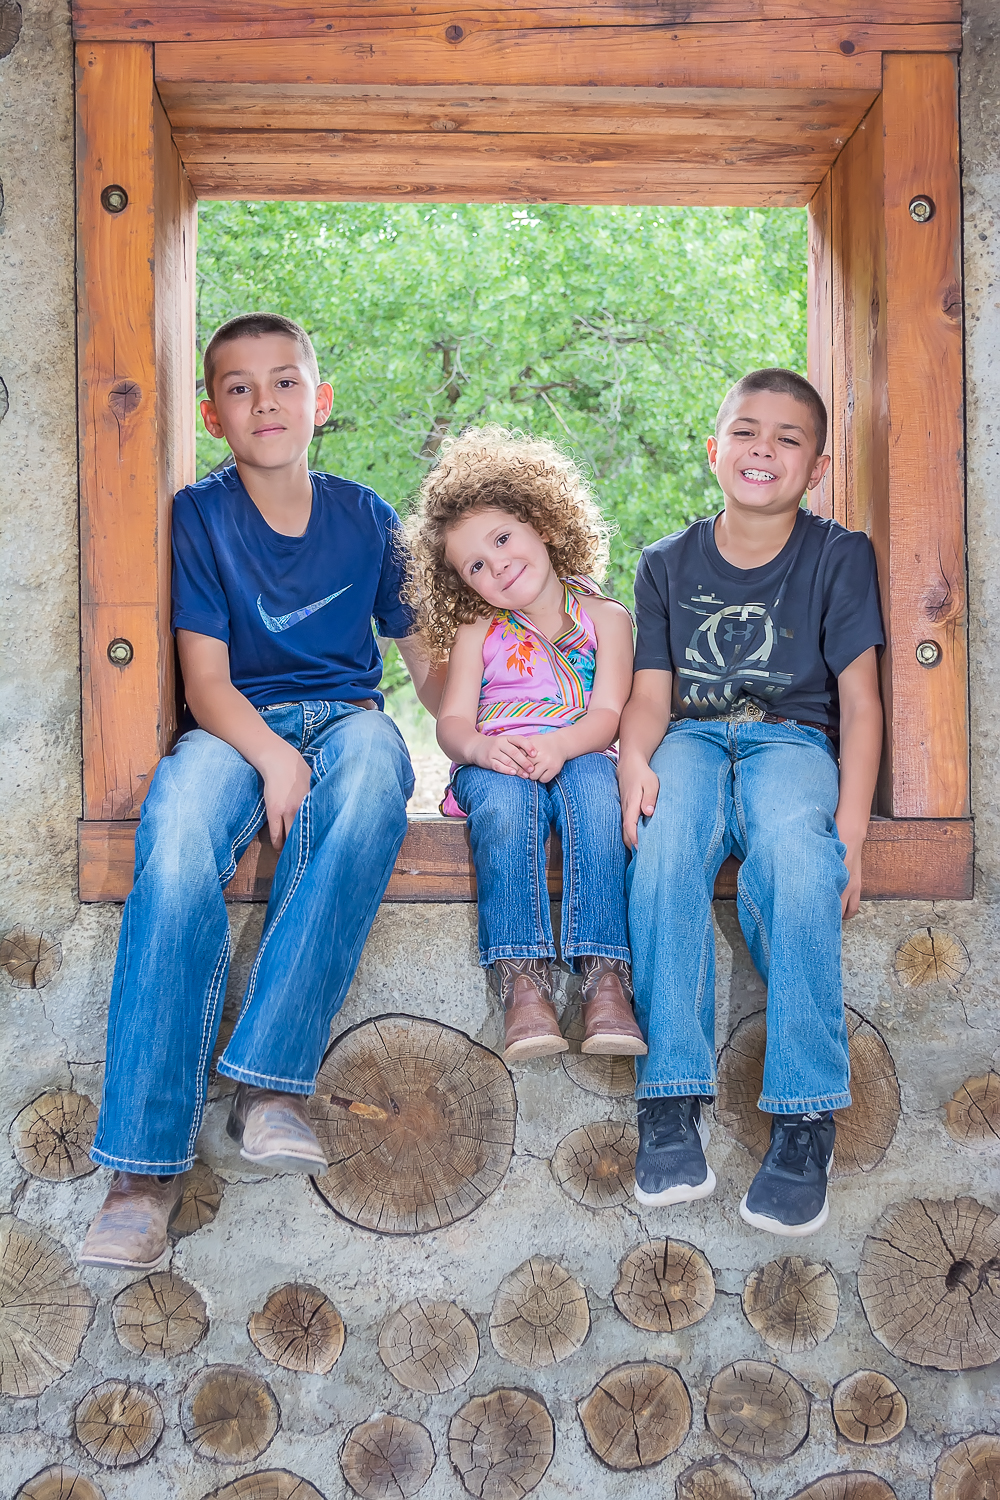 Kids Portrait, Sibling Portrait, Outdoor Family Photos, Outdoor Family Portraits, Children's Portraits, Albuquerque Photographers